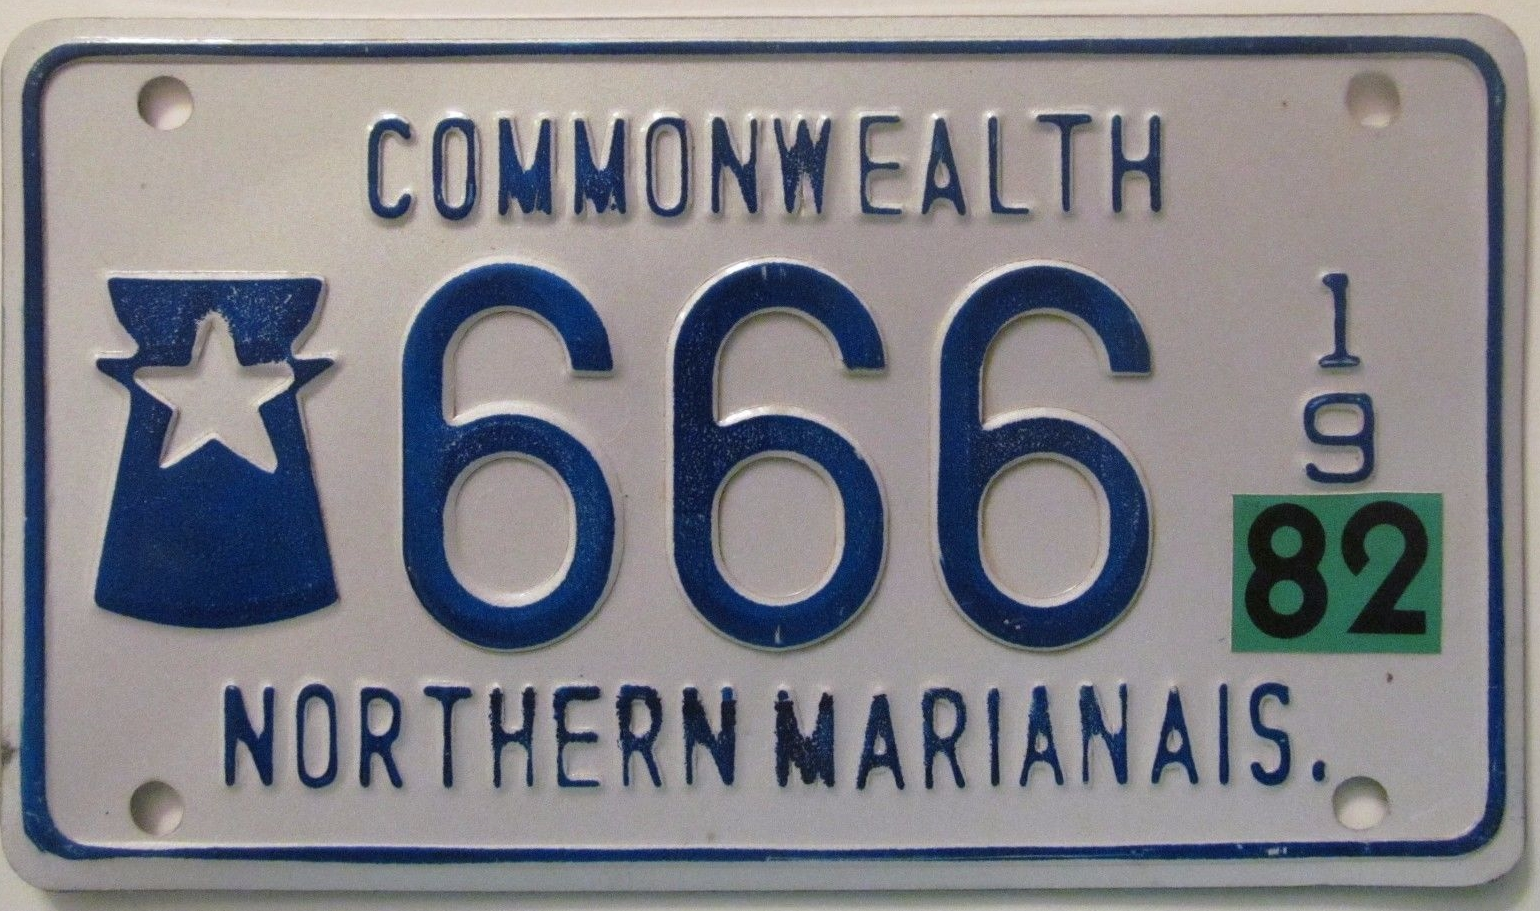 Motorcycle license plate from the Northern Mariana Islands, 1982.